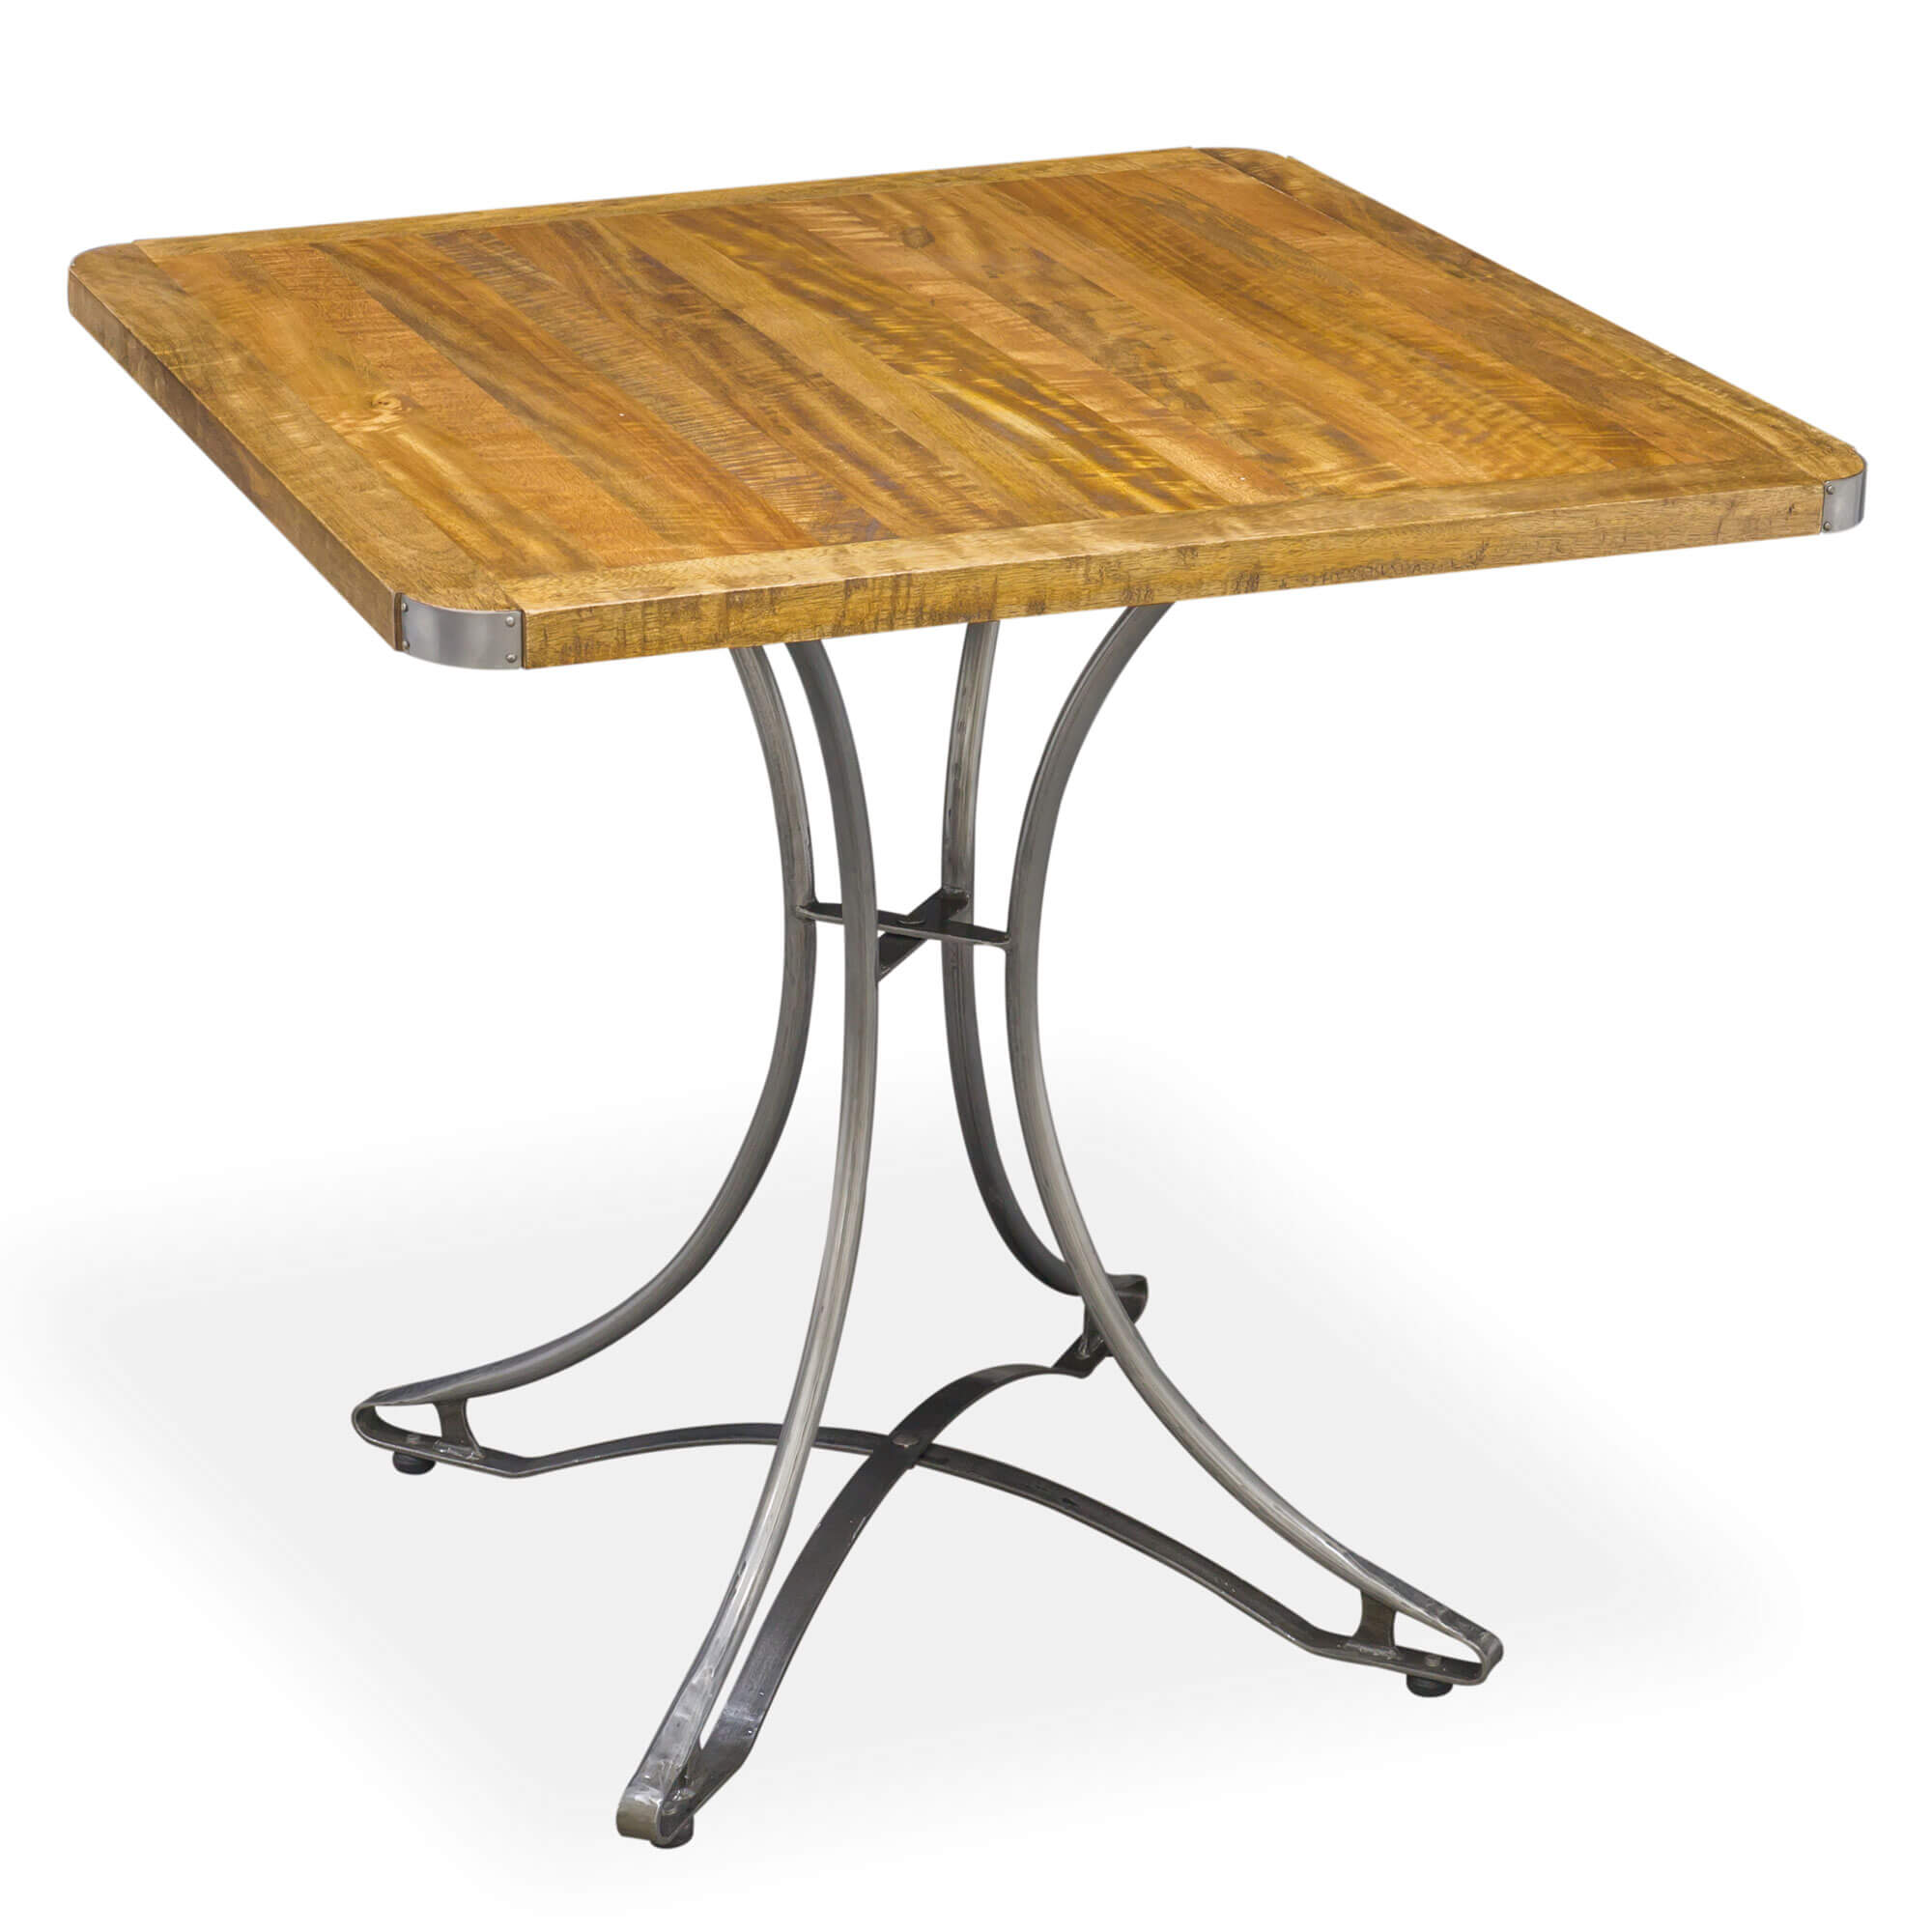 Urban Square Cafe Table x2 Chairs (80x80) | Solid Wood |